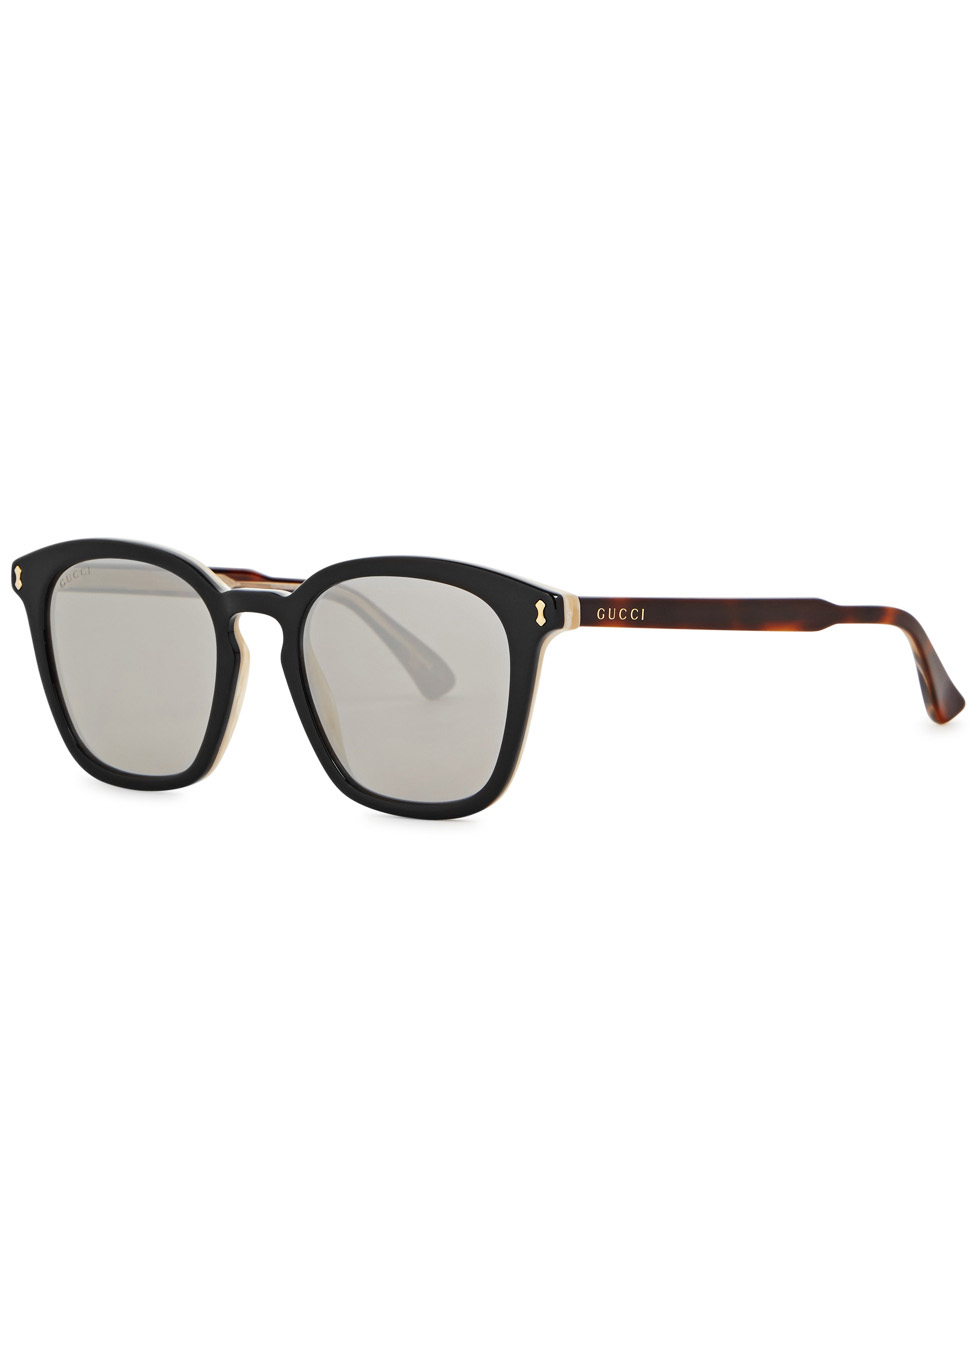 Black mirrored square-frame sunglasses - Gucci